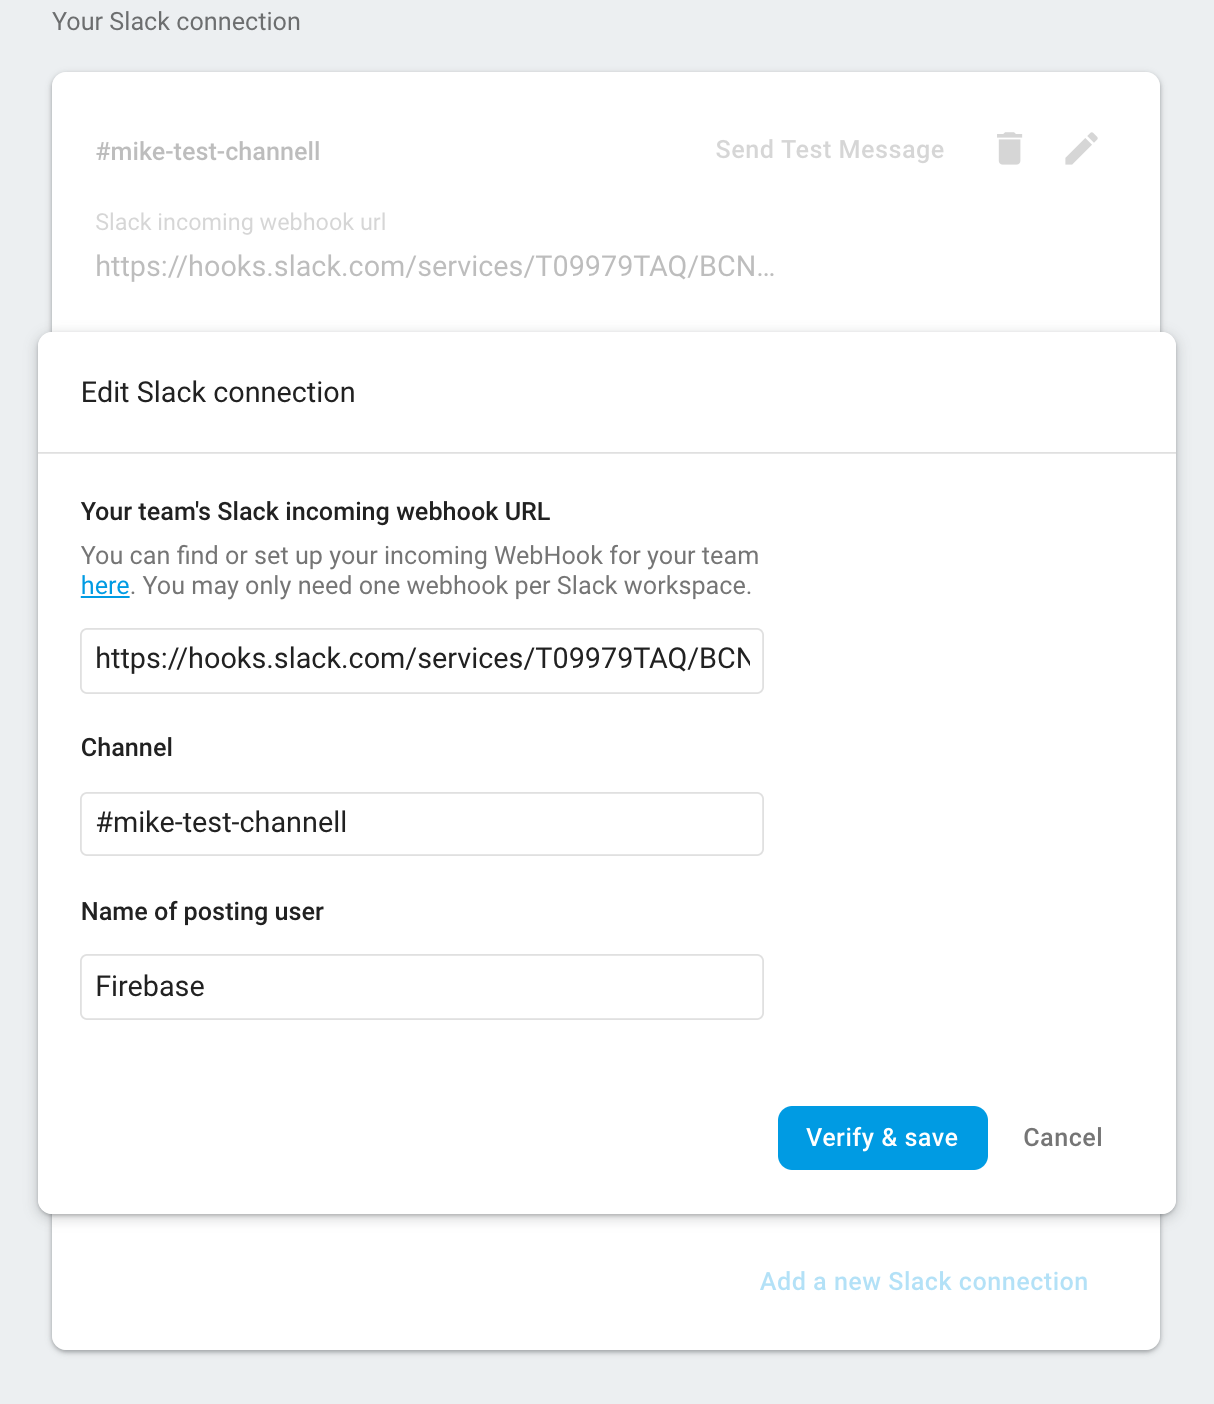 image of slack connection configuration